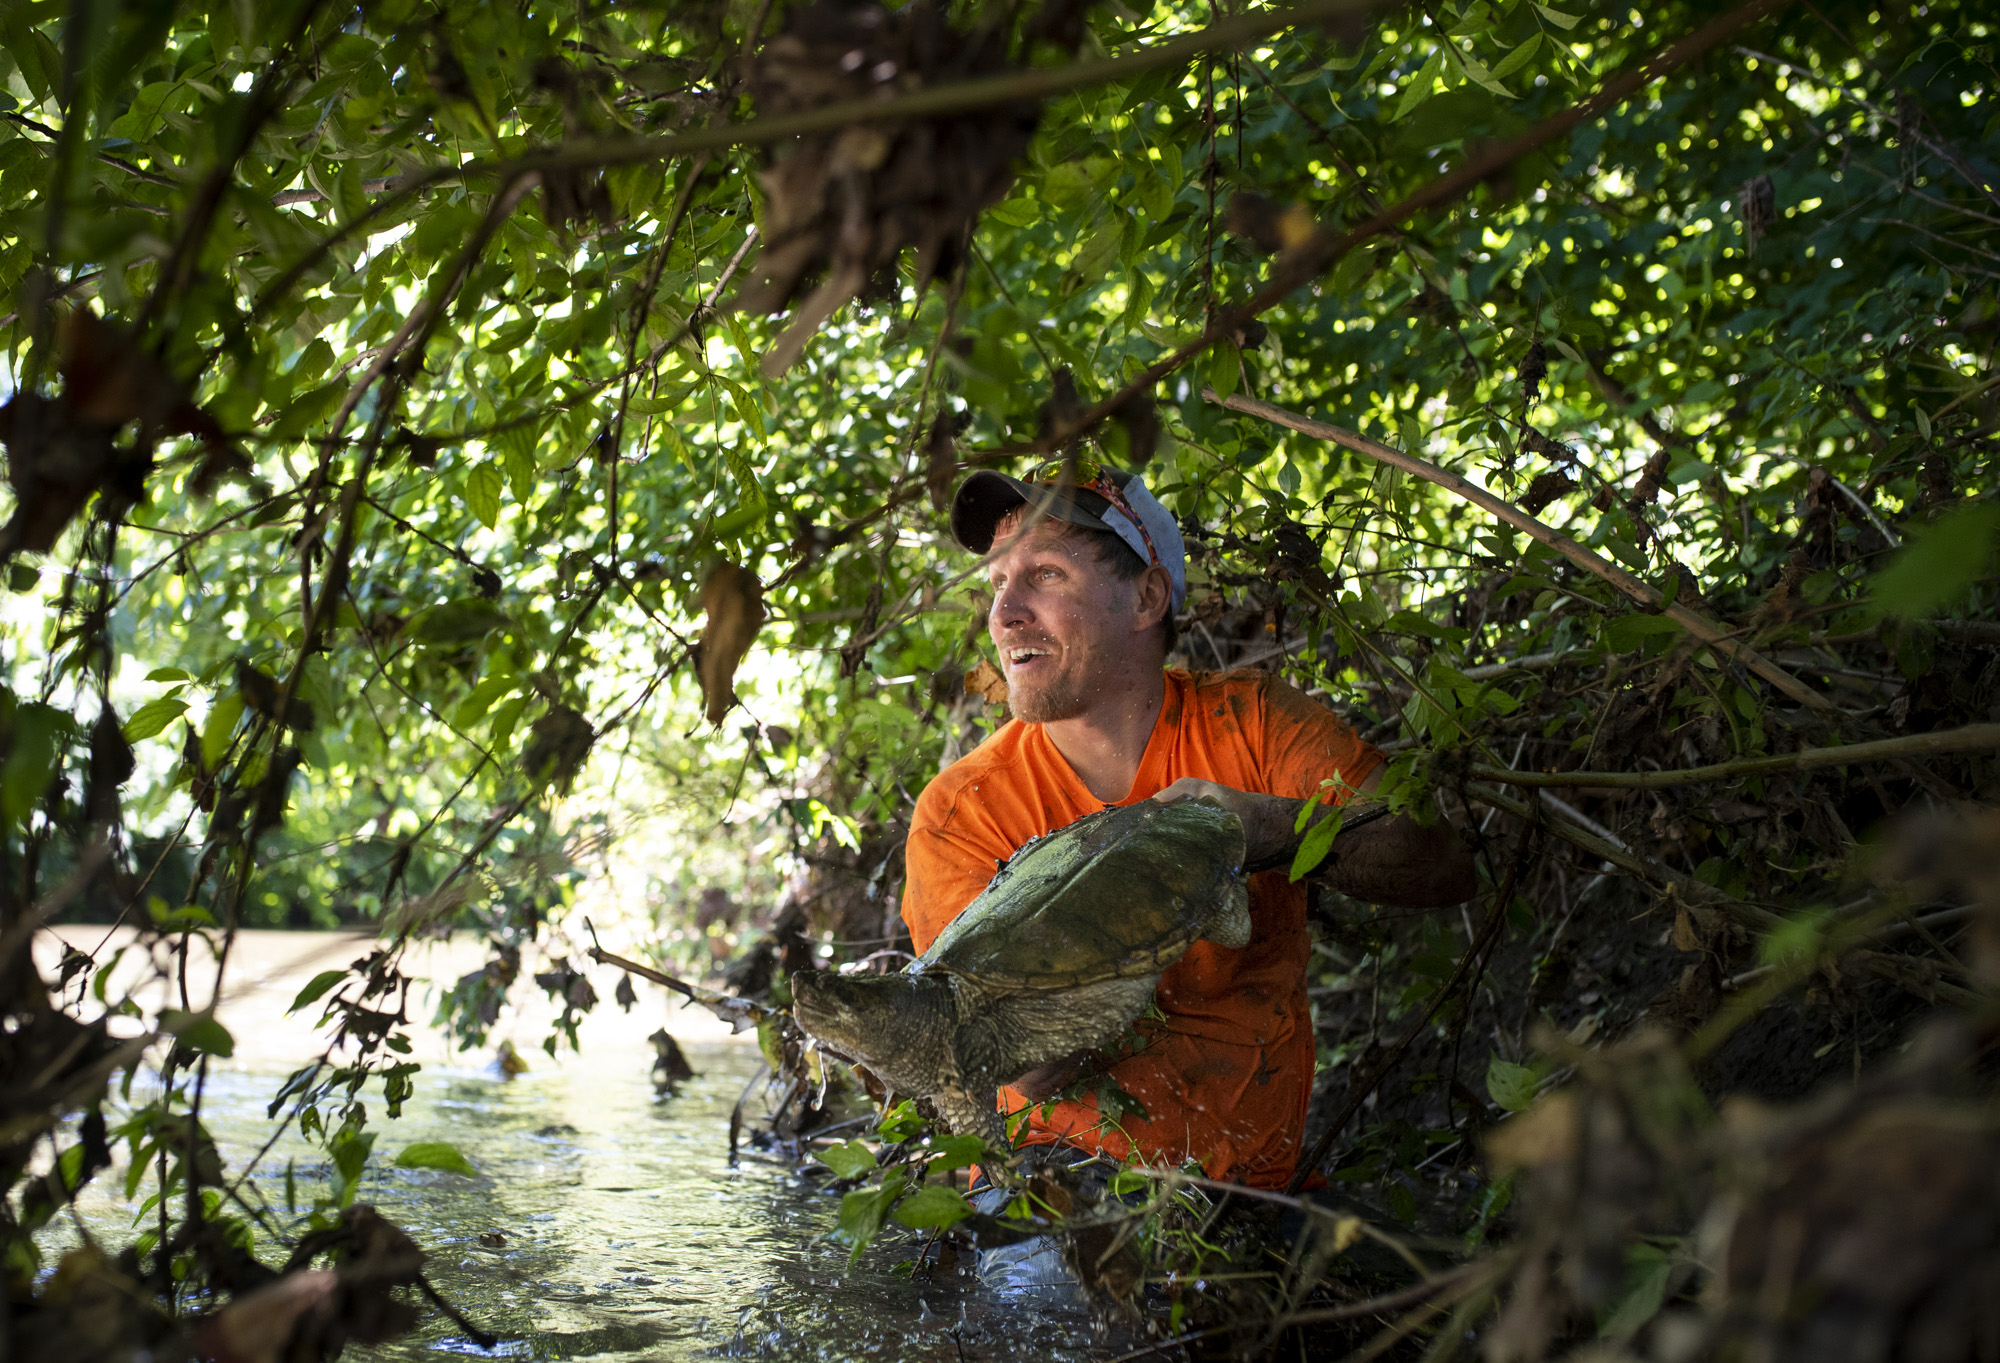 Joe Clemens pull out a snapping turtle from under the brush in Sewickley Creek.